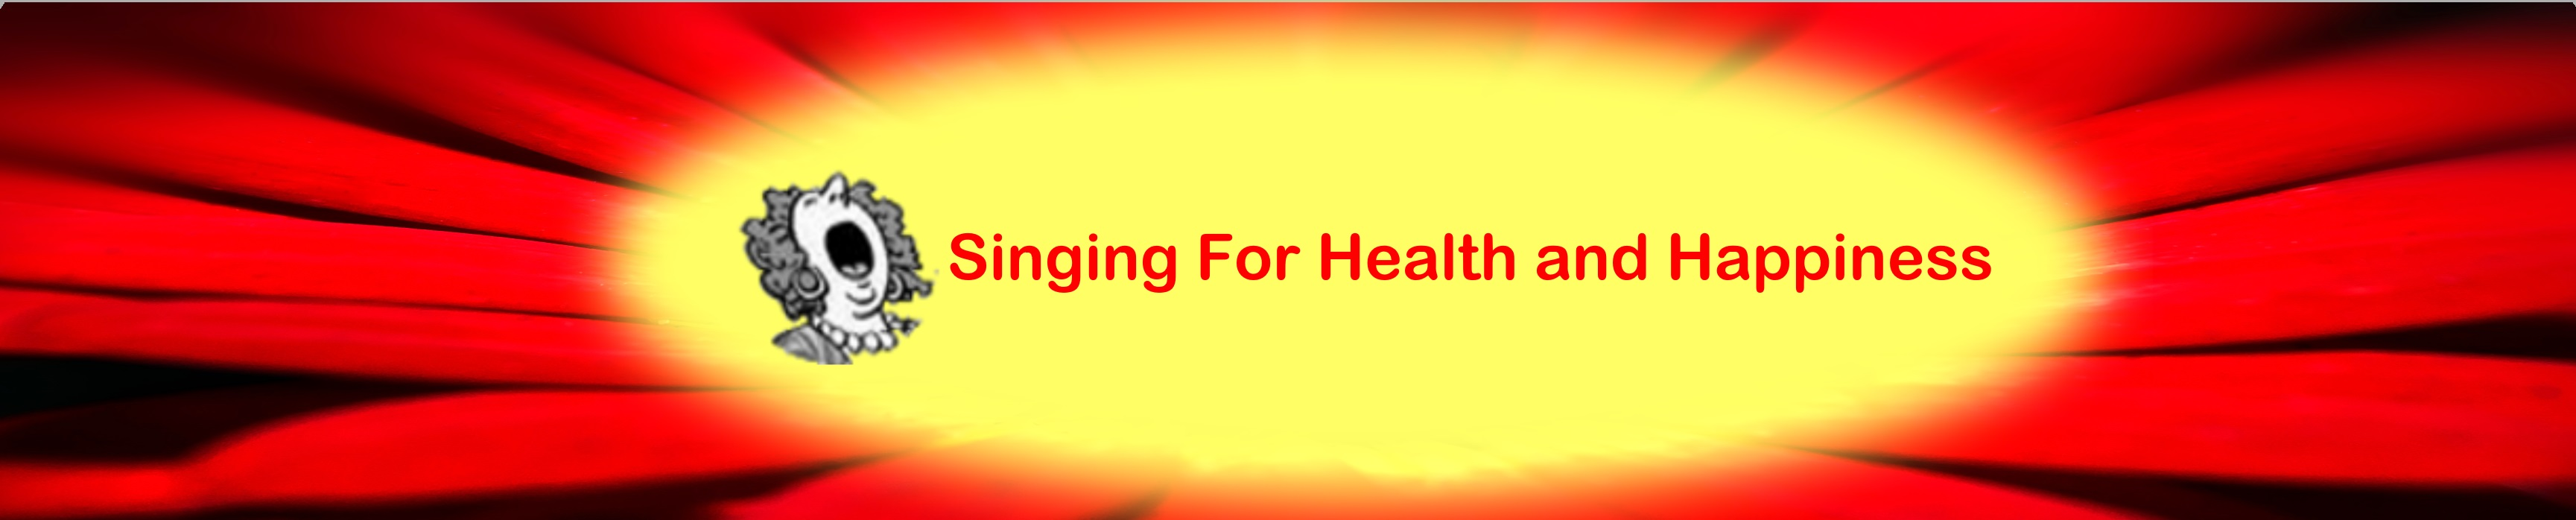 singing for health & happiness